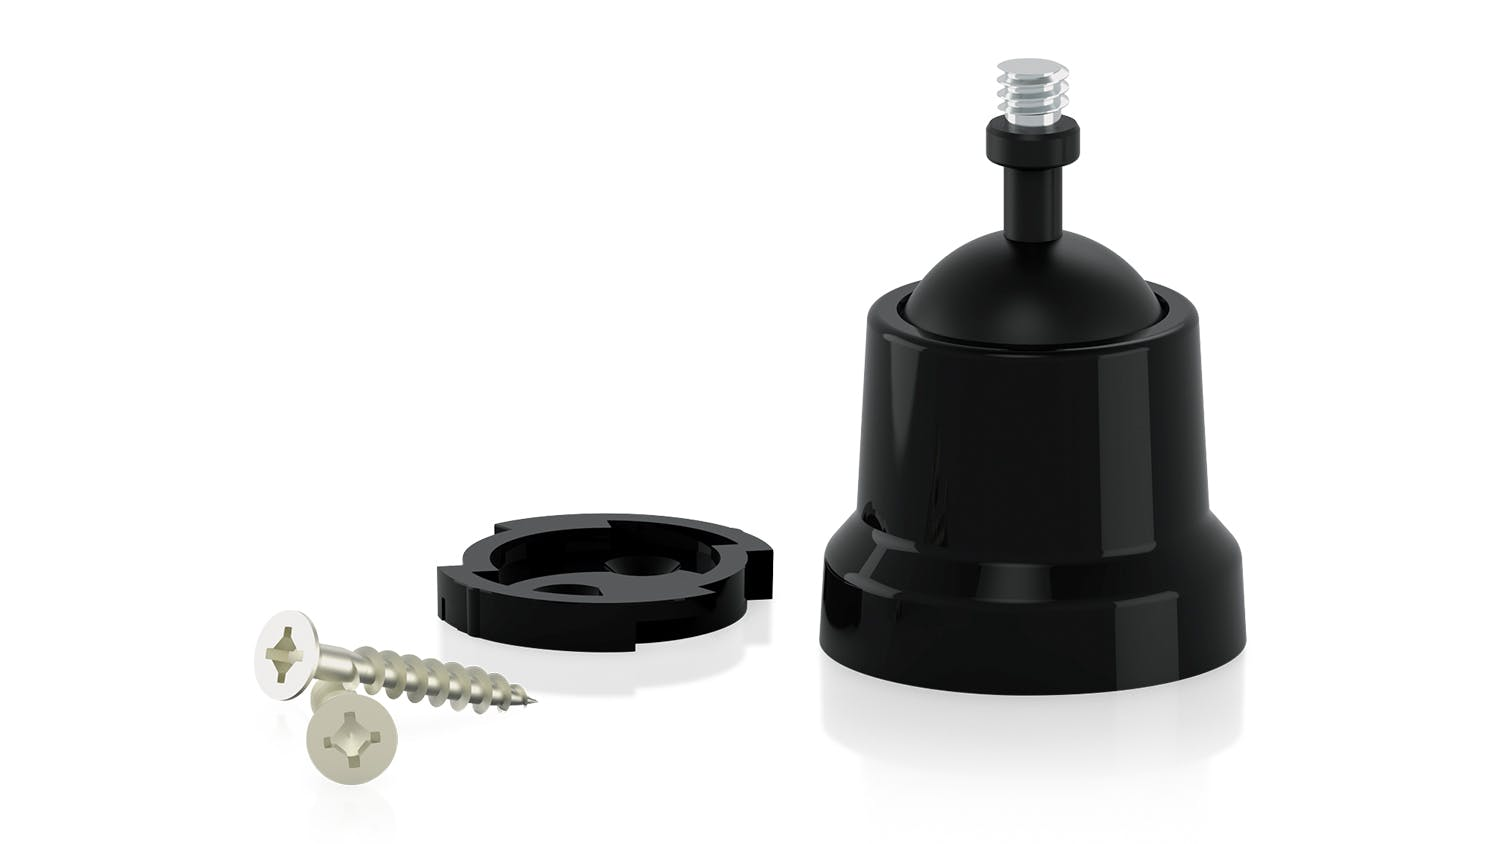 Arlo Pro Outdoor Mount - Black